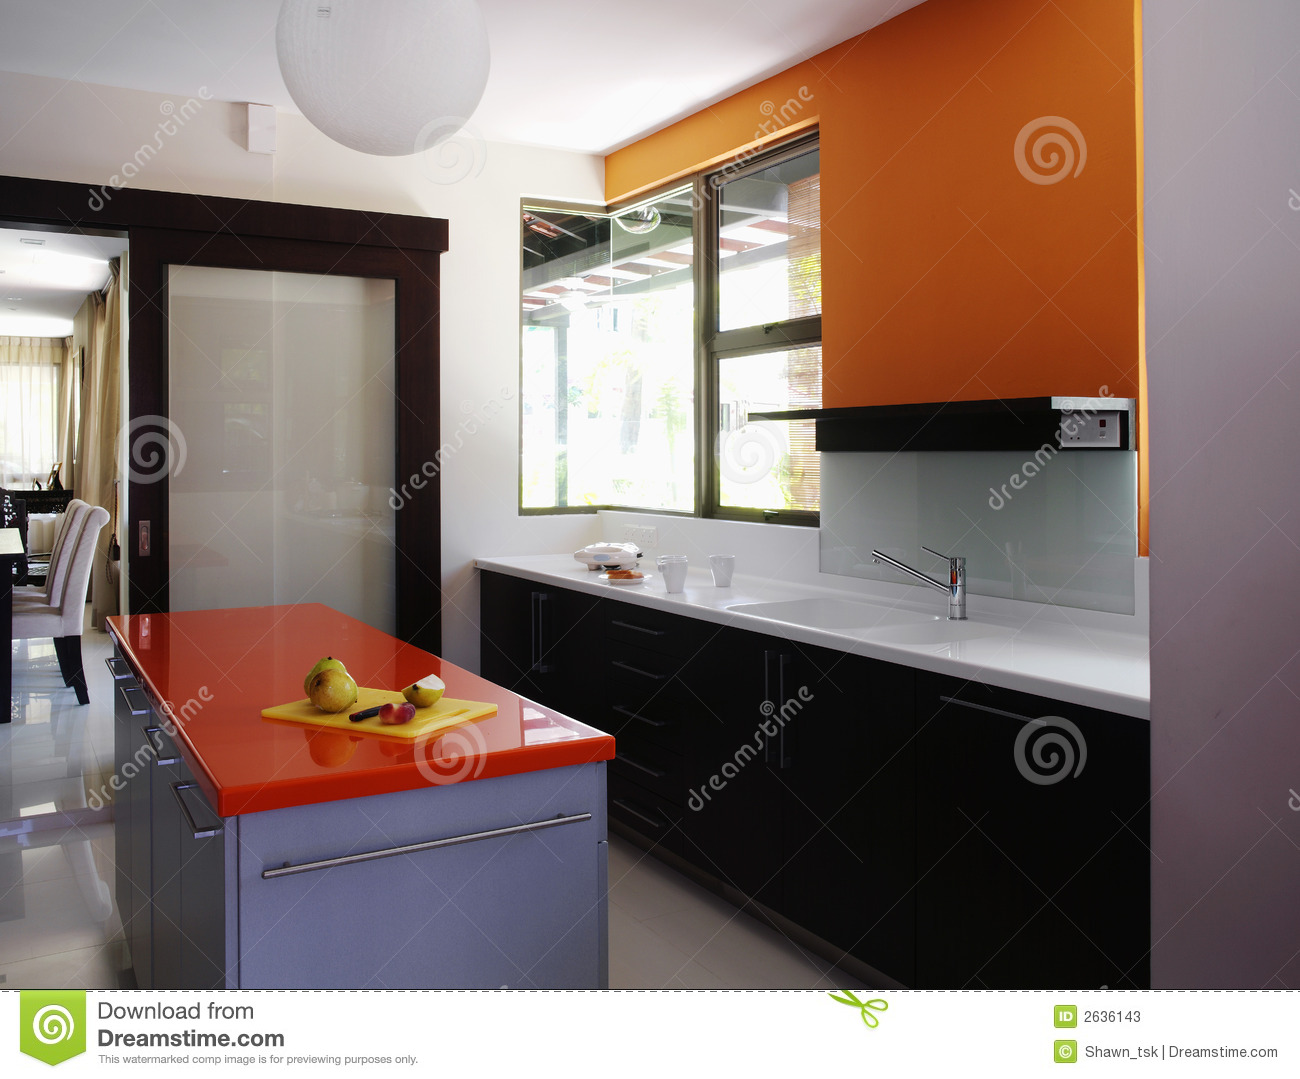 Interior Design Kitchen Stock Photos Image 2636143